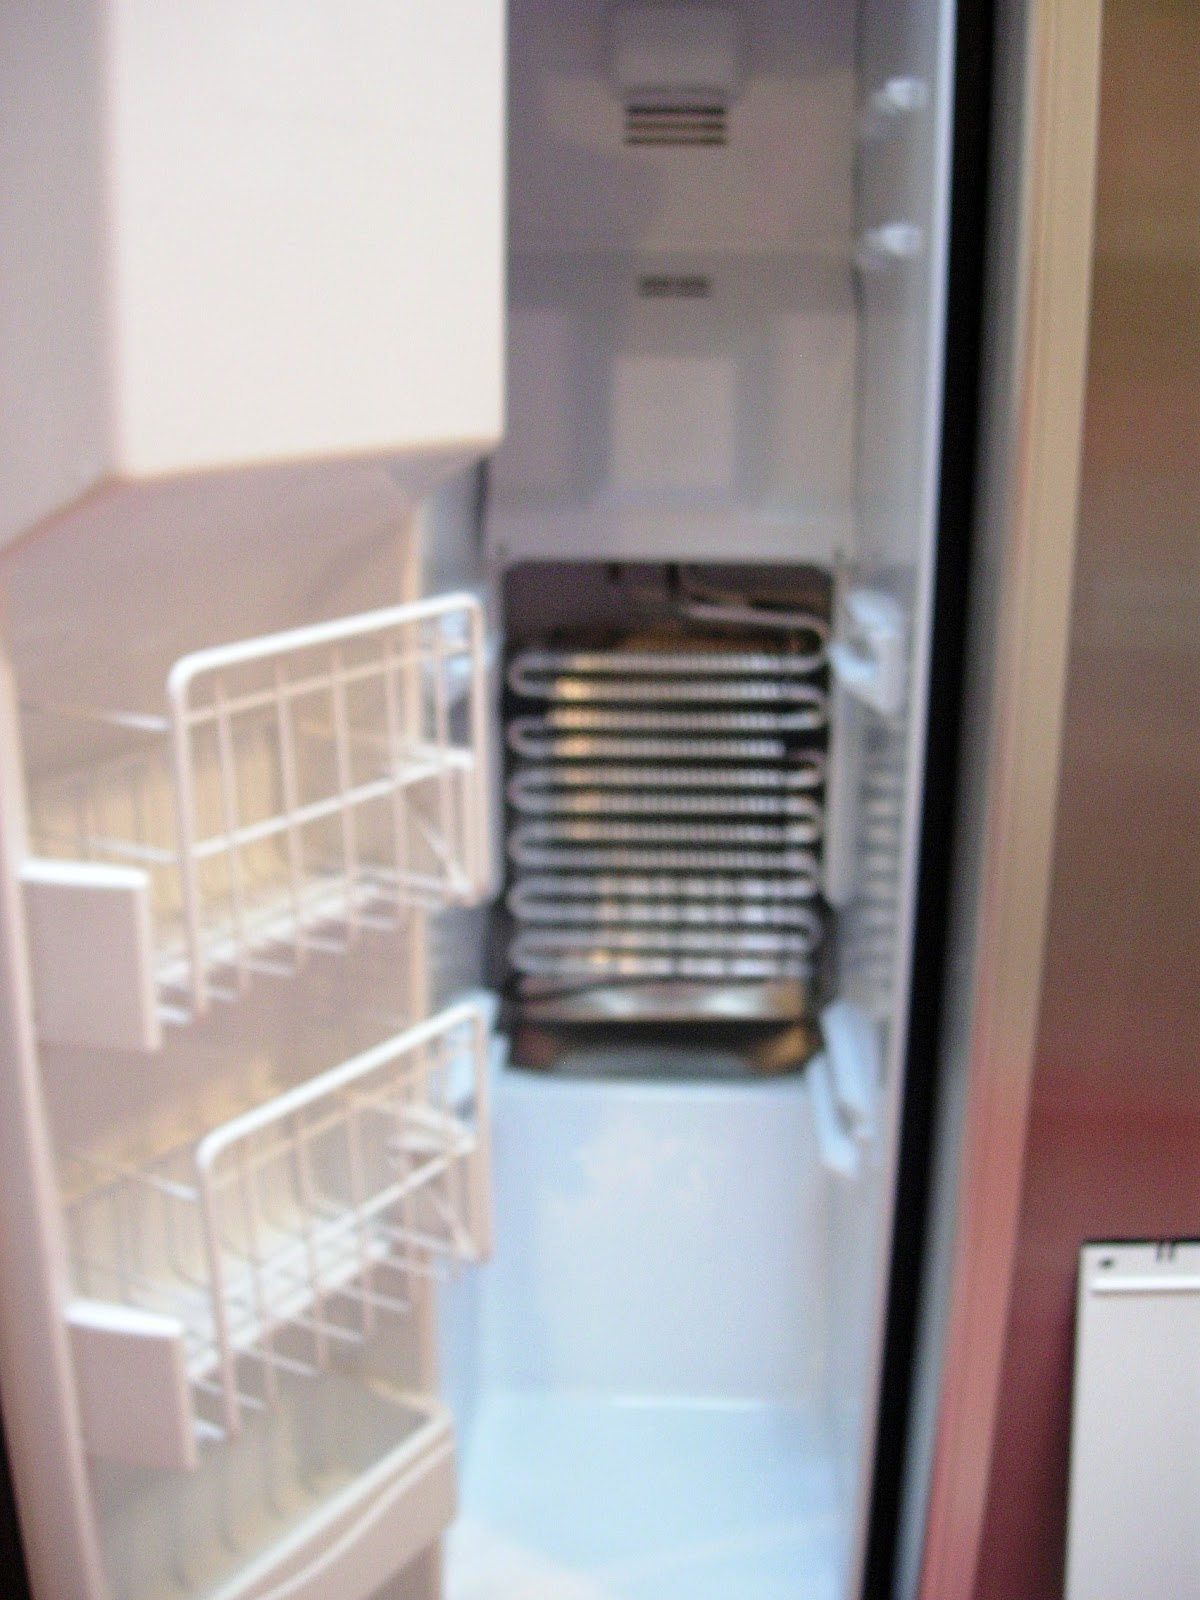 jenn air refrigerator side by side. inside view of jenn-air side by freezer after panel was removed. jenn air refrigerator